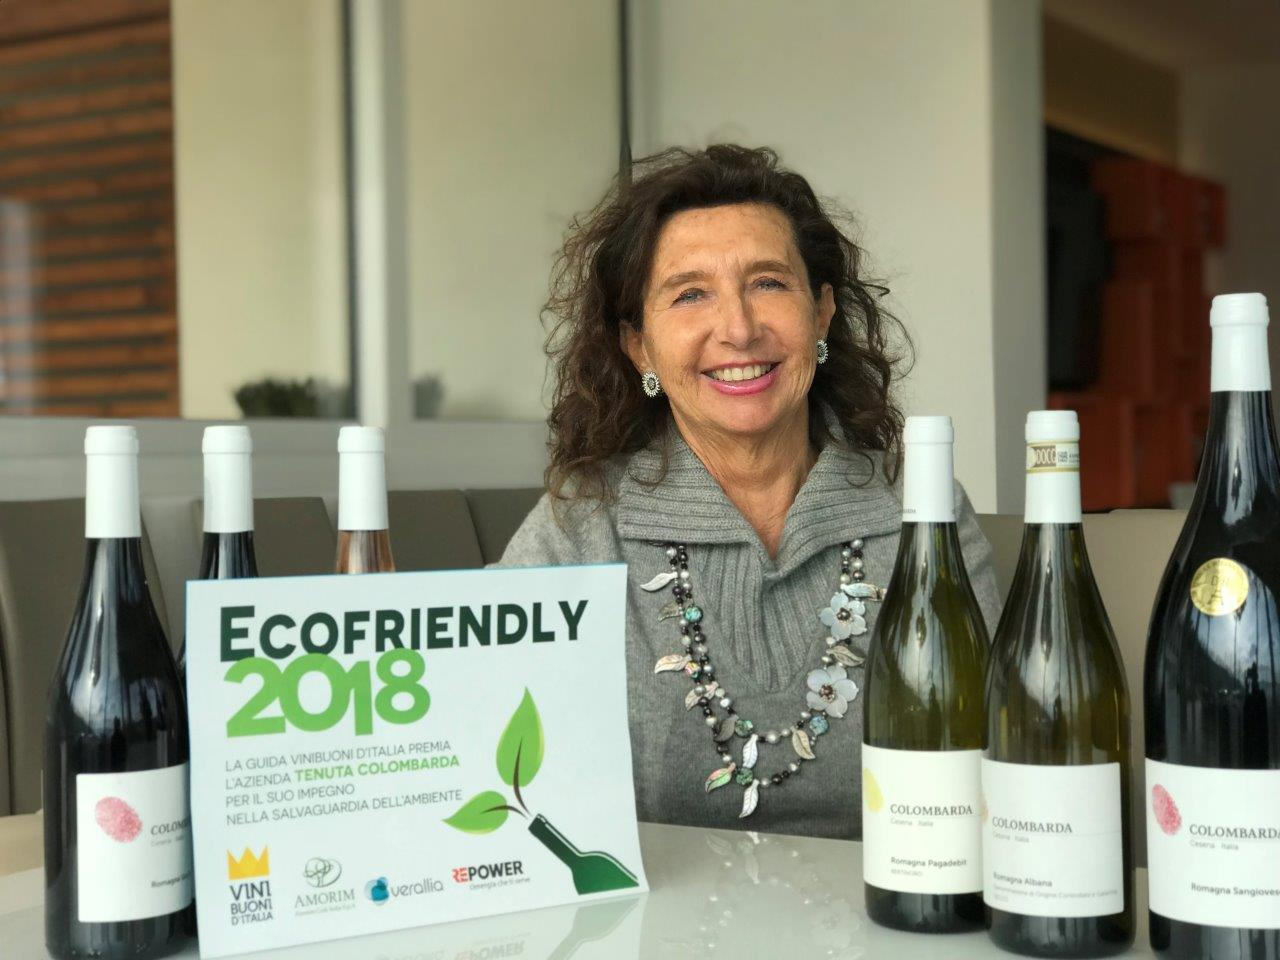 """Ecofriendly 2018"" per Tenuta Colombarda"